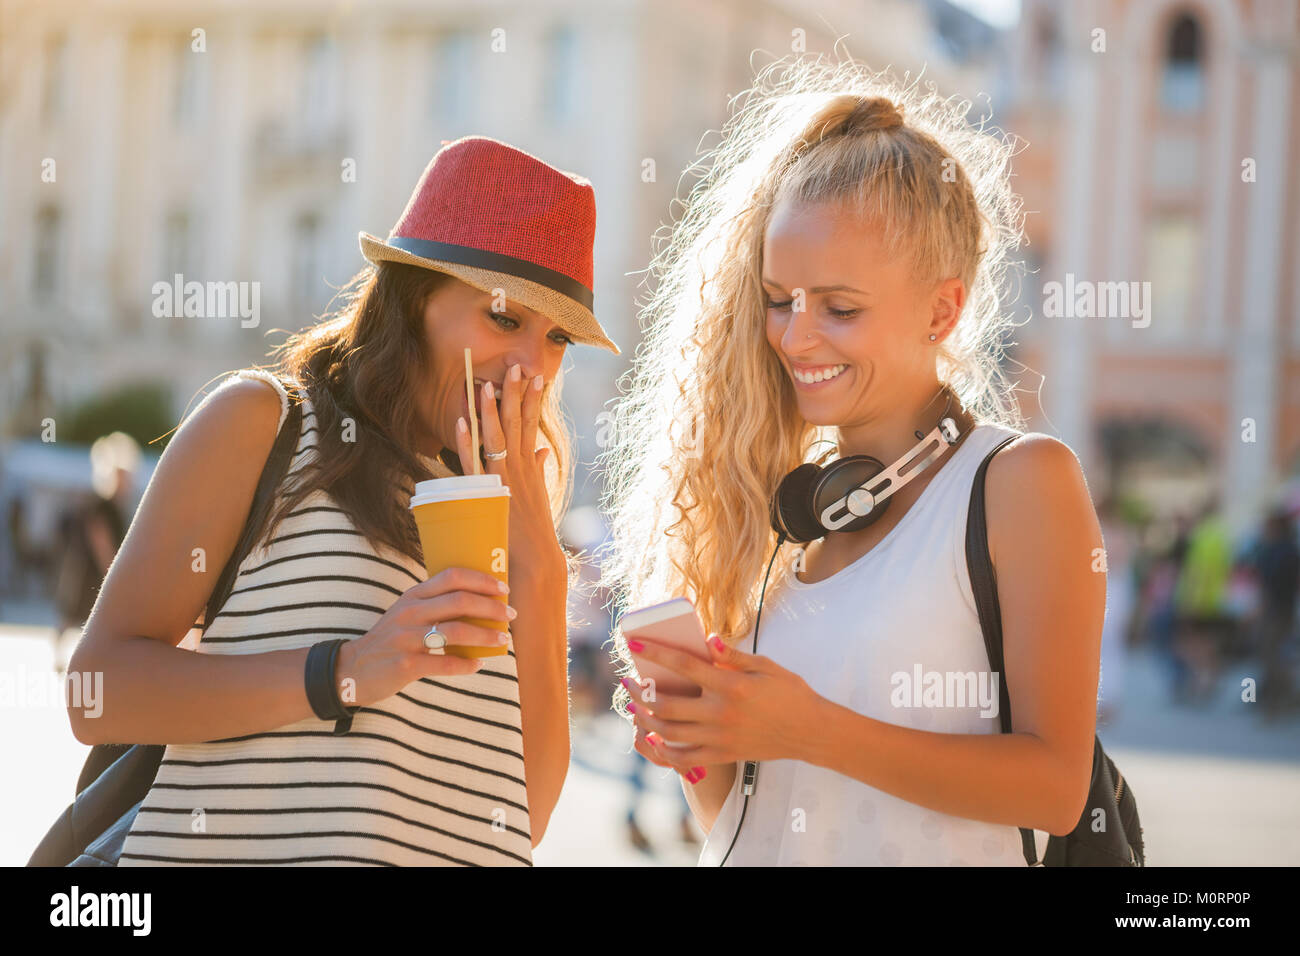 Two happy women are having nice time together in the city. - Stock Image